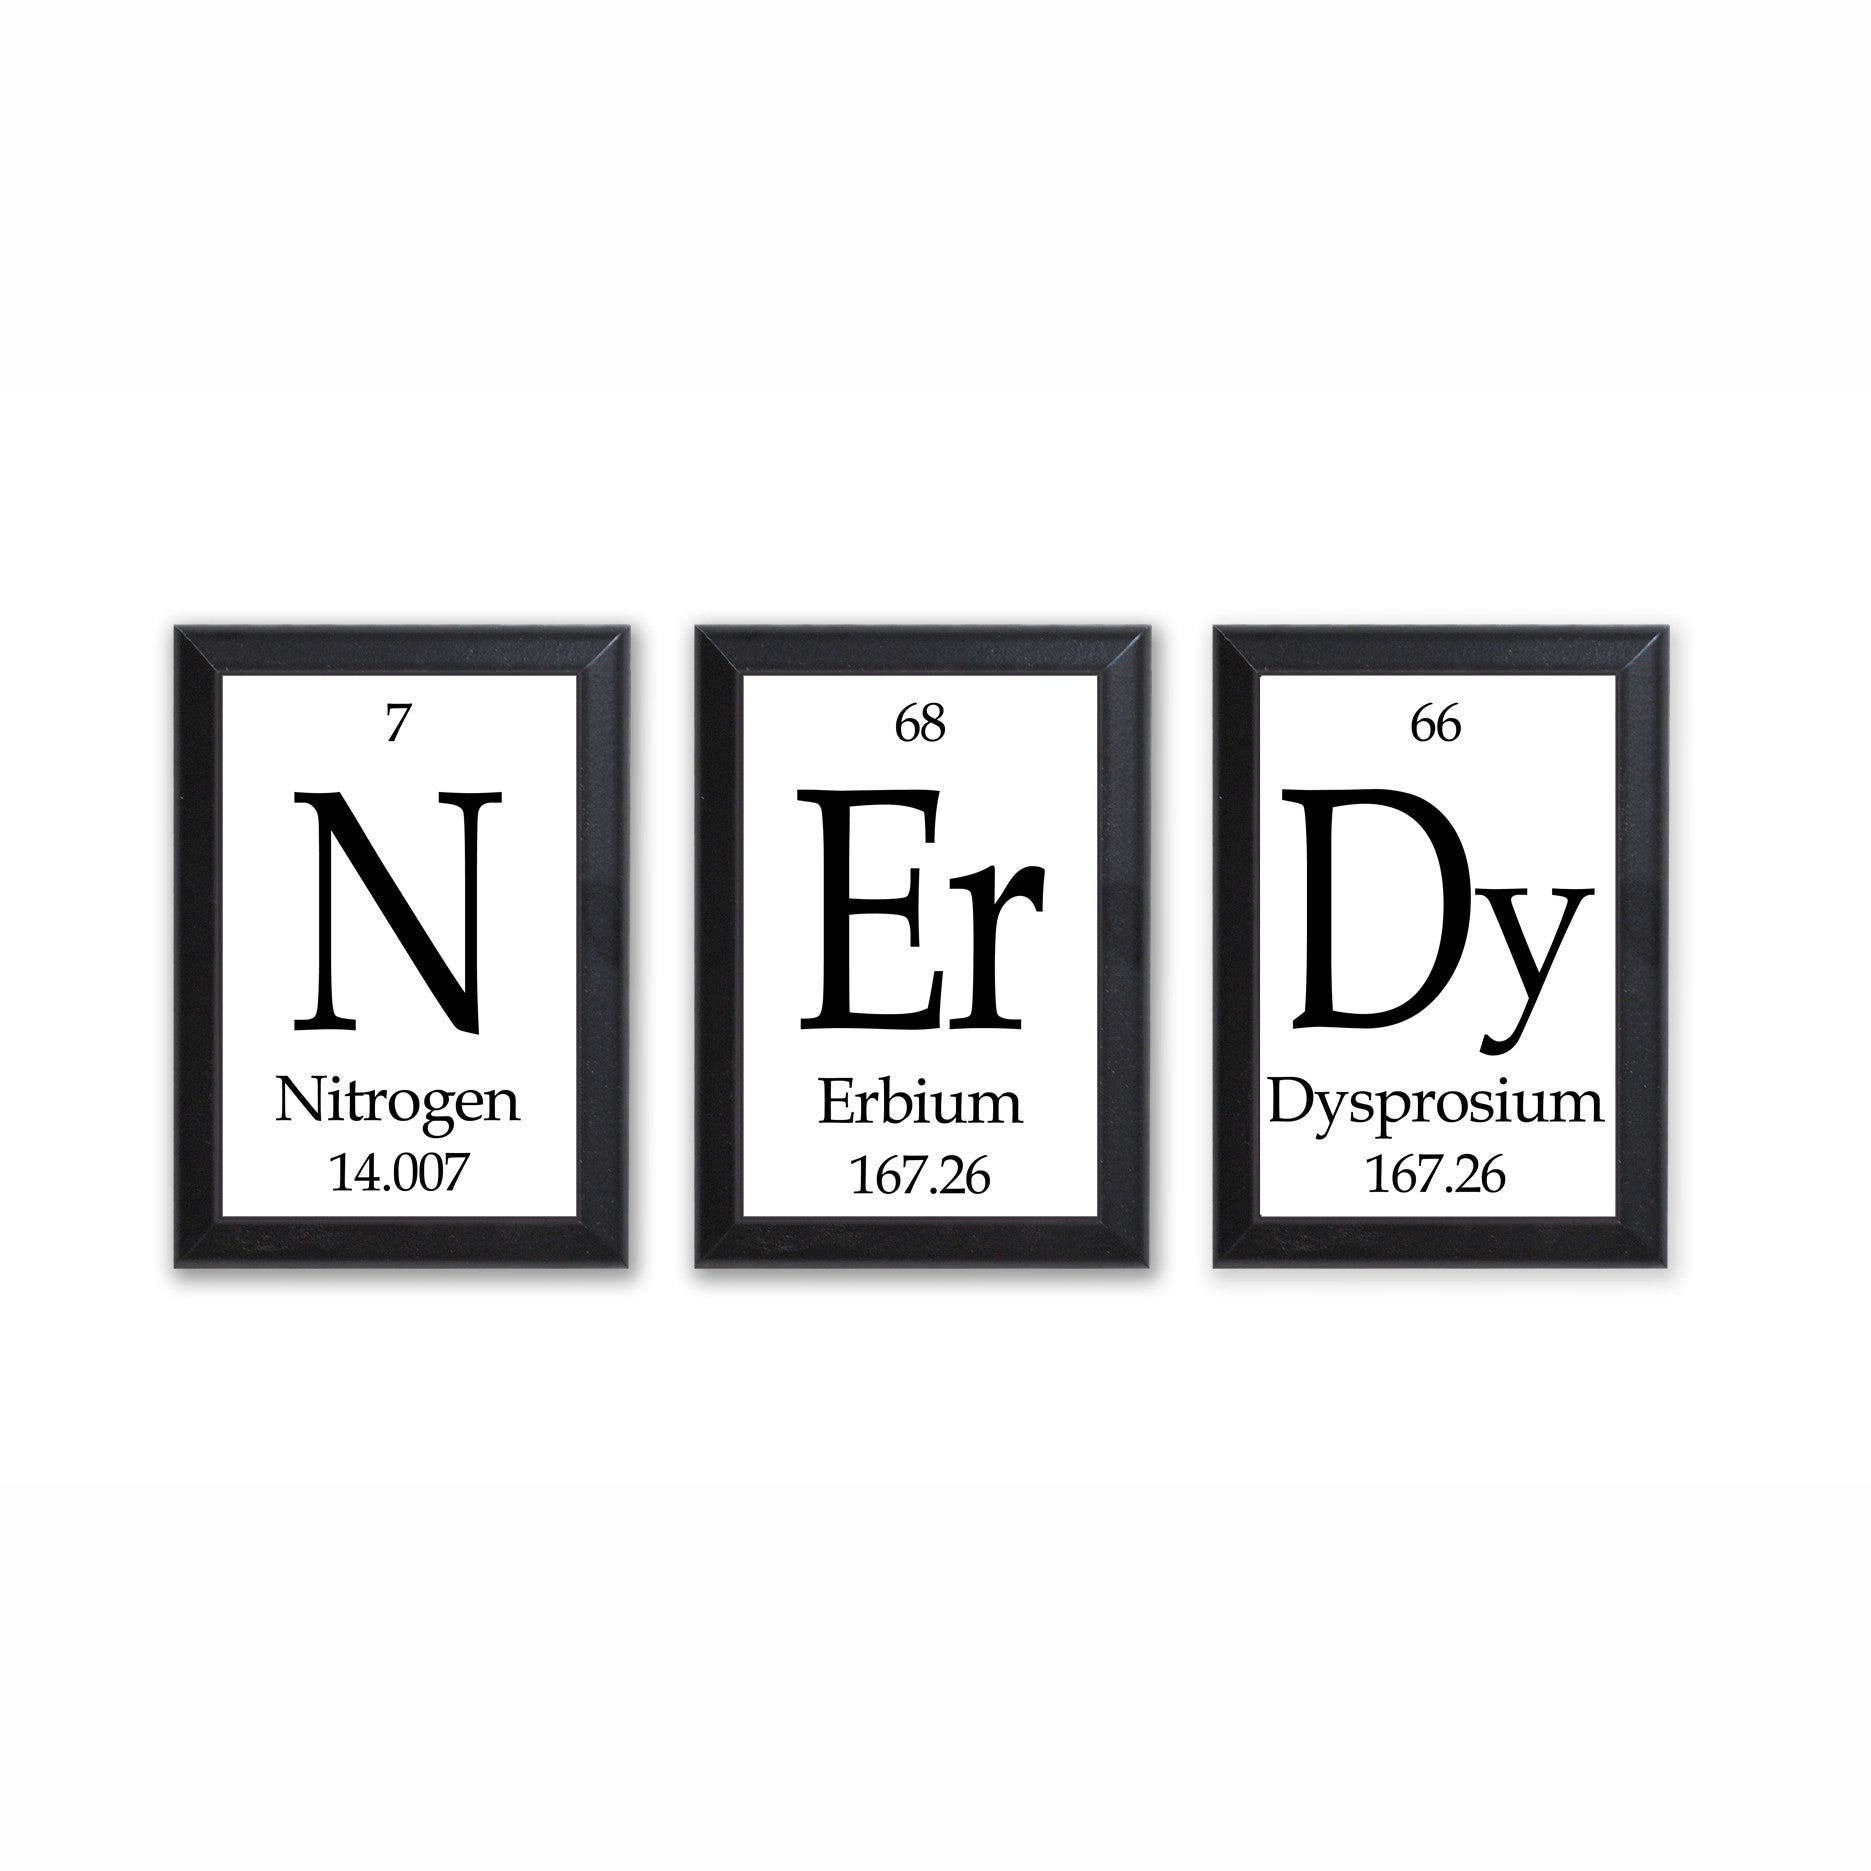 Nerdy periodic table framed 3 piece wall plaque set each plaque 5 nerdy periodic table framed 3 piece wall plaque set each plaque 5 x 7 gamestrikefo Gallery